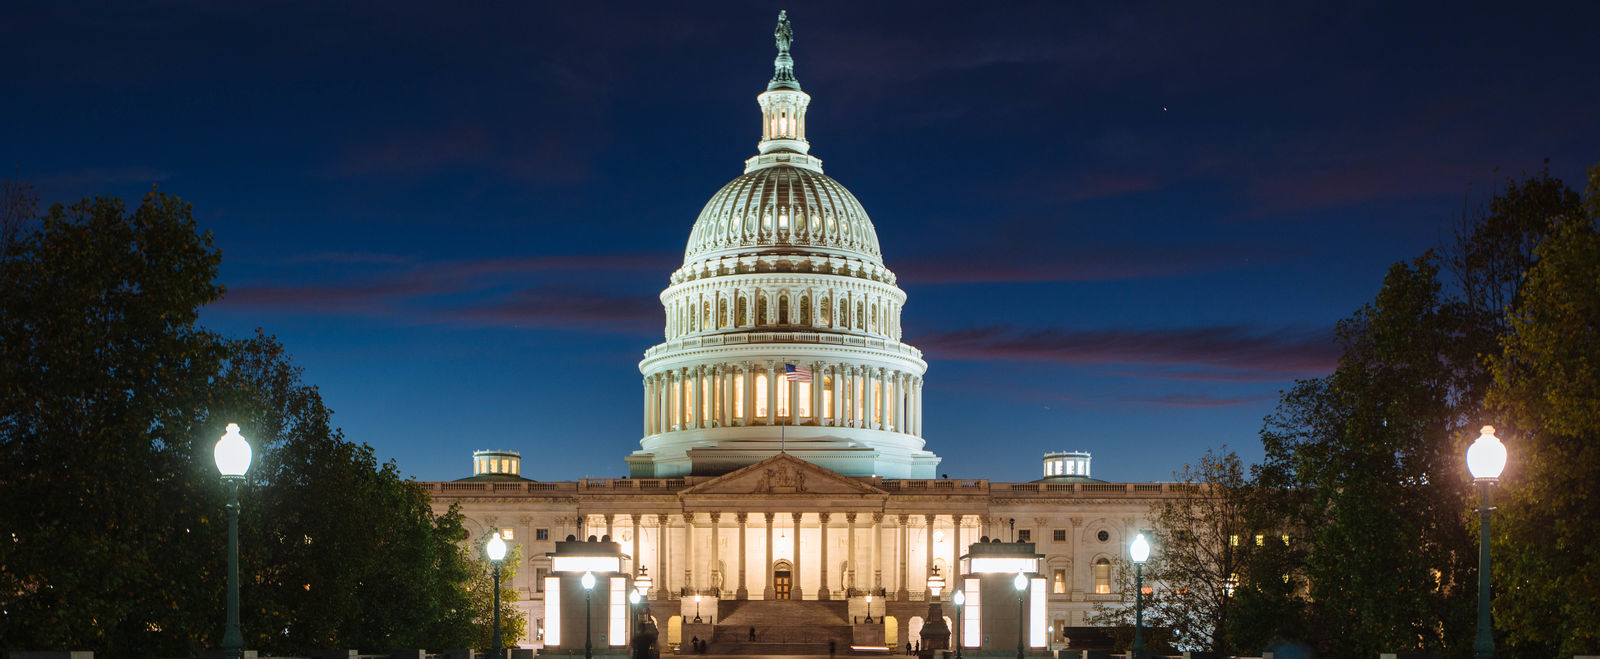 The D.C. Capitol Building at night time.